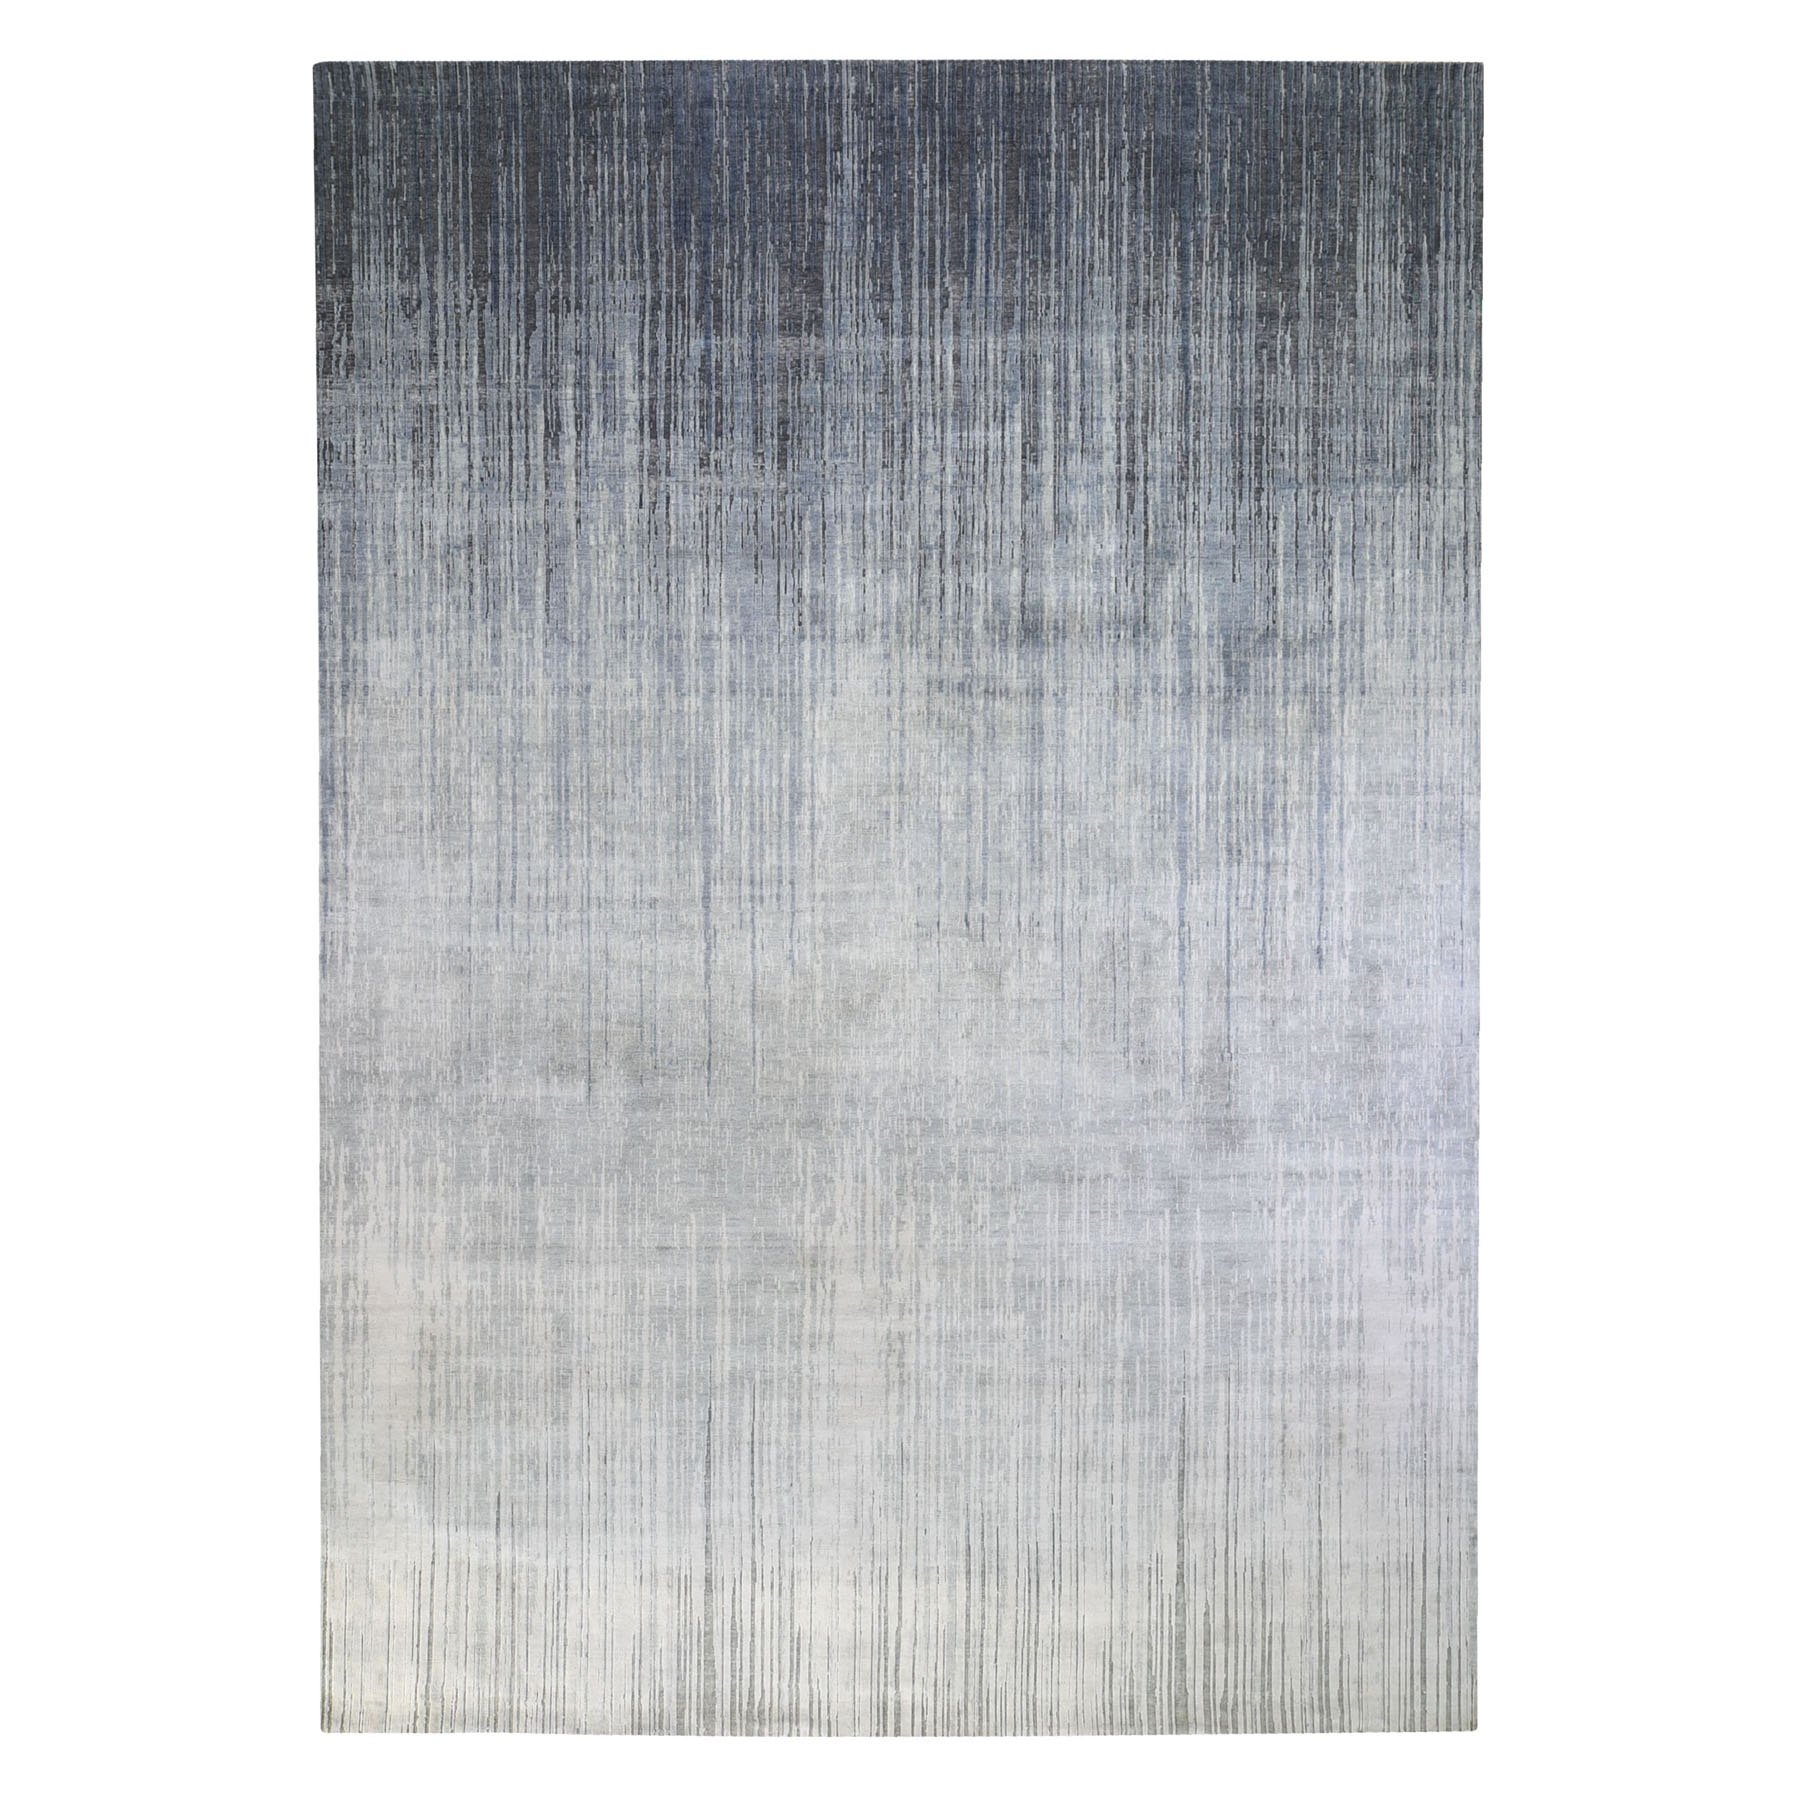 Mid Century Modern Collection Hand Knotted Grey Rug No: 1119892